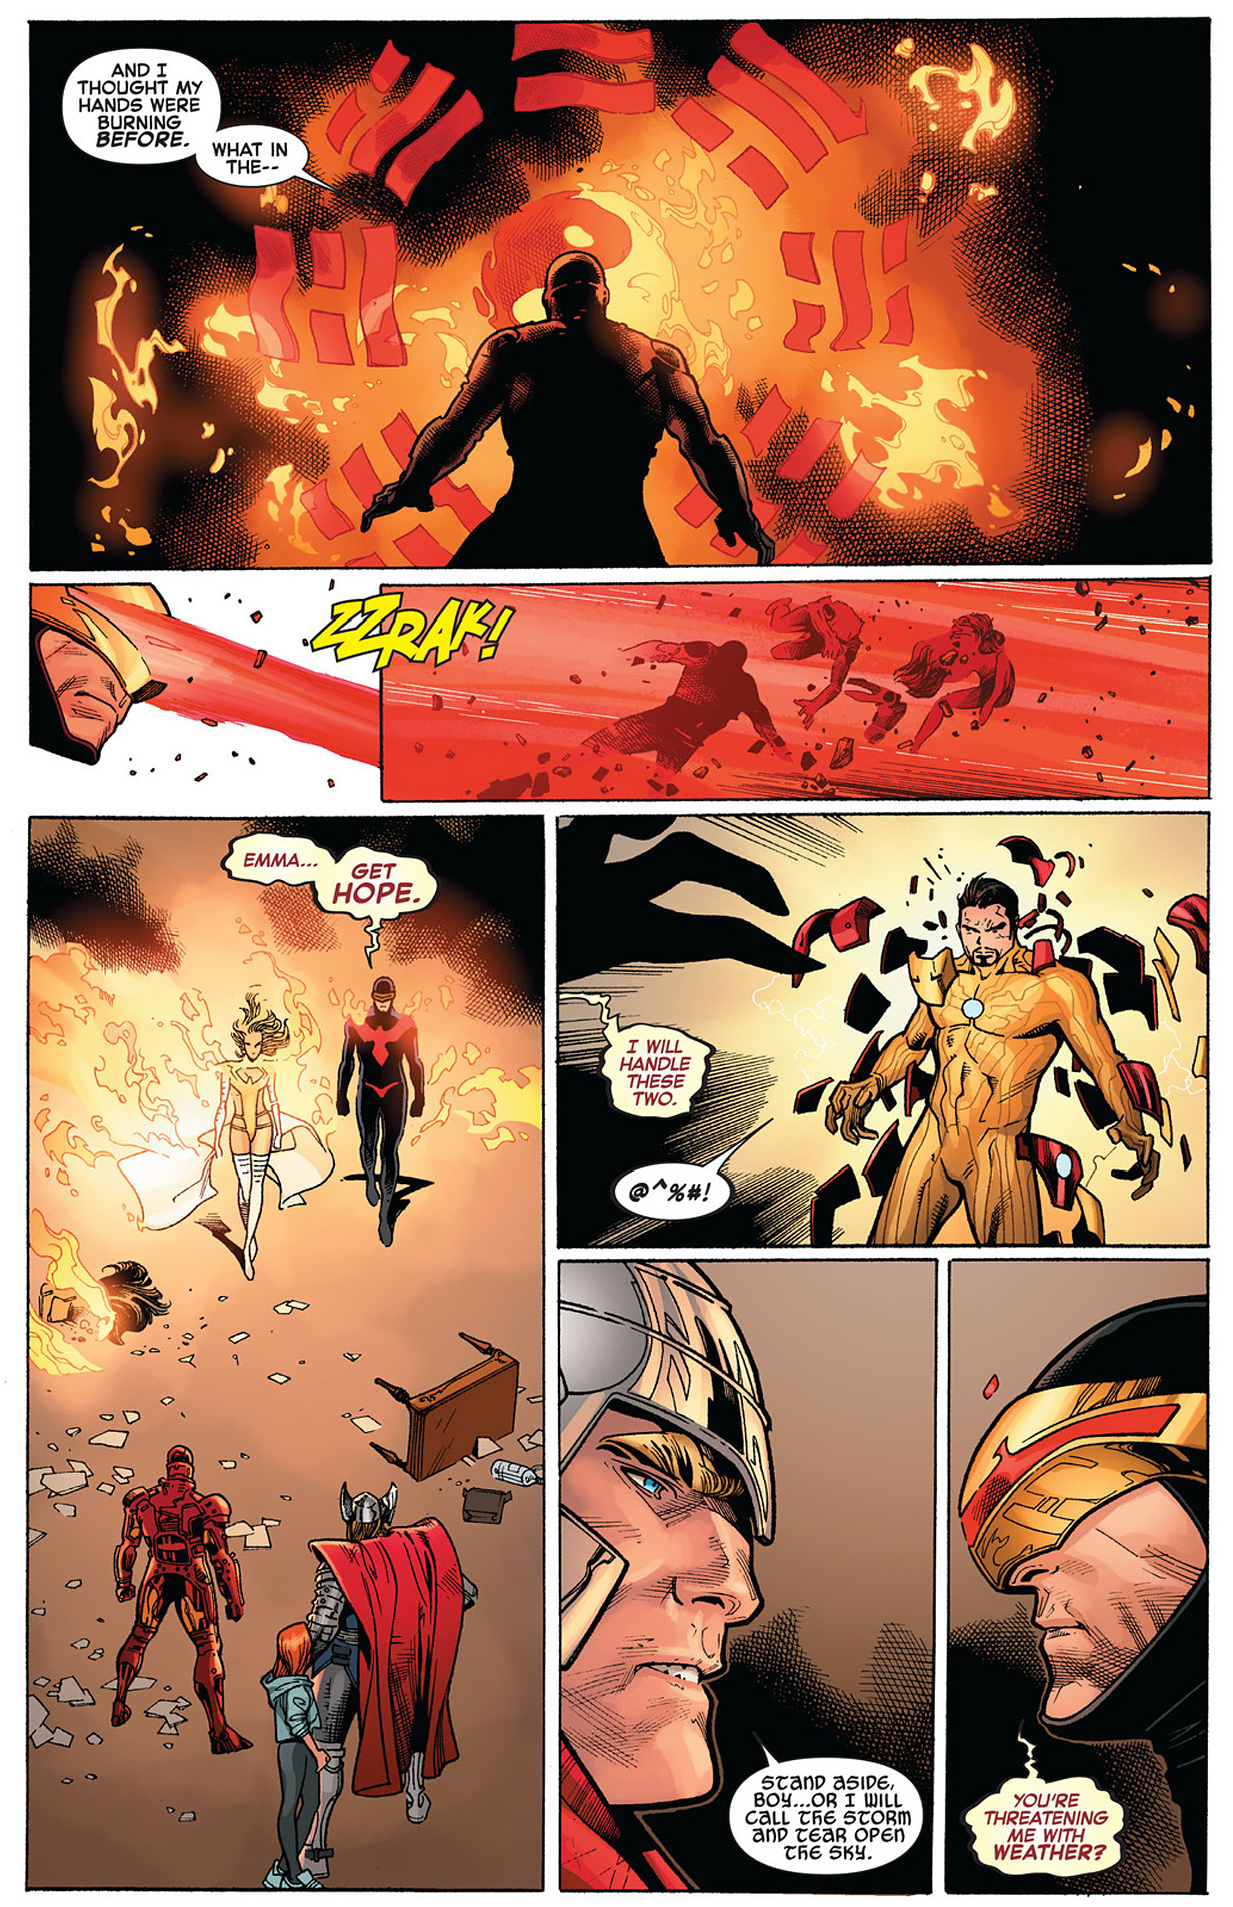 cyclops and emma frost vs the avengers (avx)